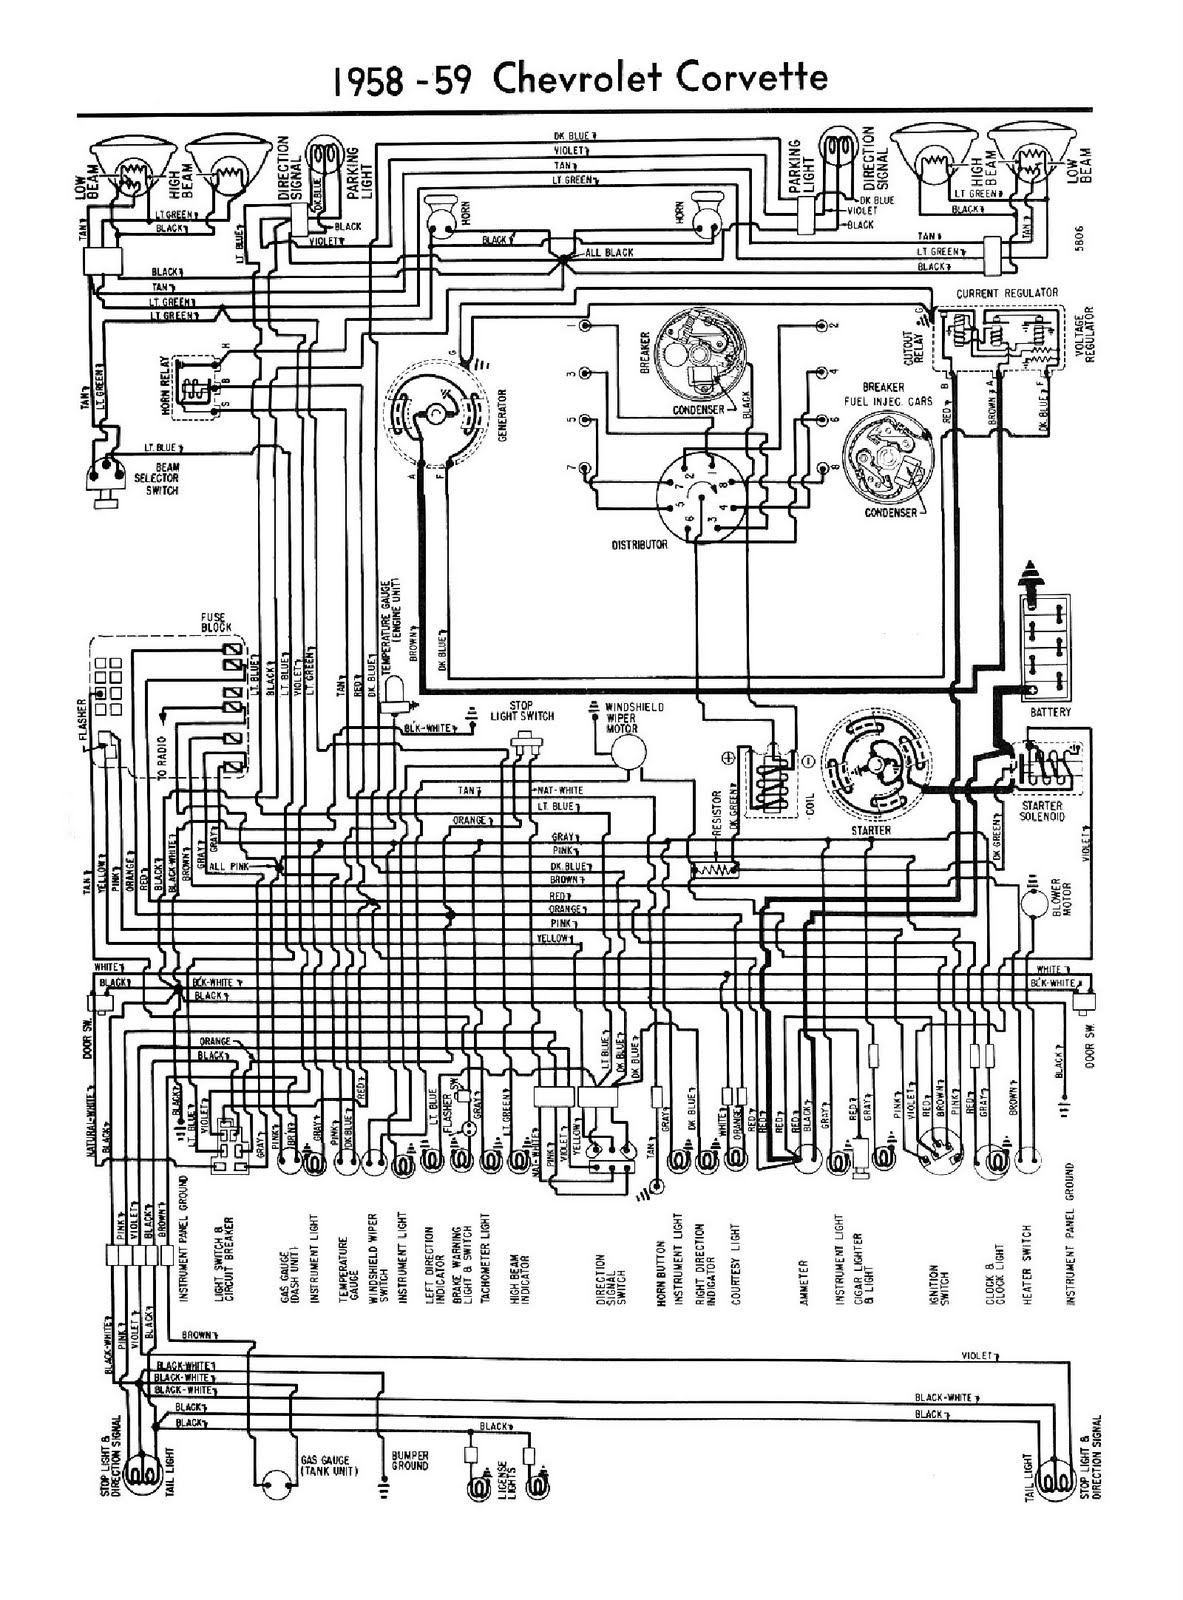 light wiring 1959 chevrolet apache 3800 light automotive wiring 1958 1959 chevrolet corvette wiring diagram